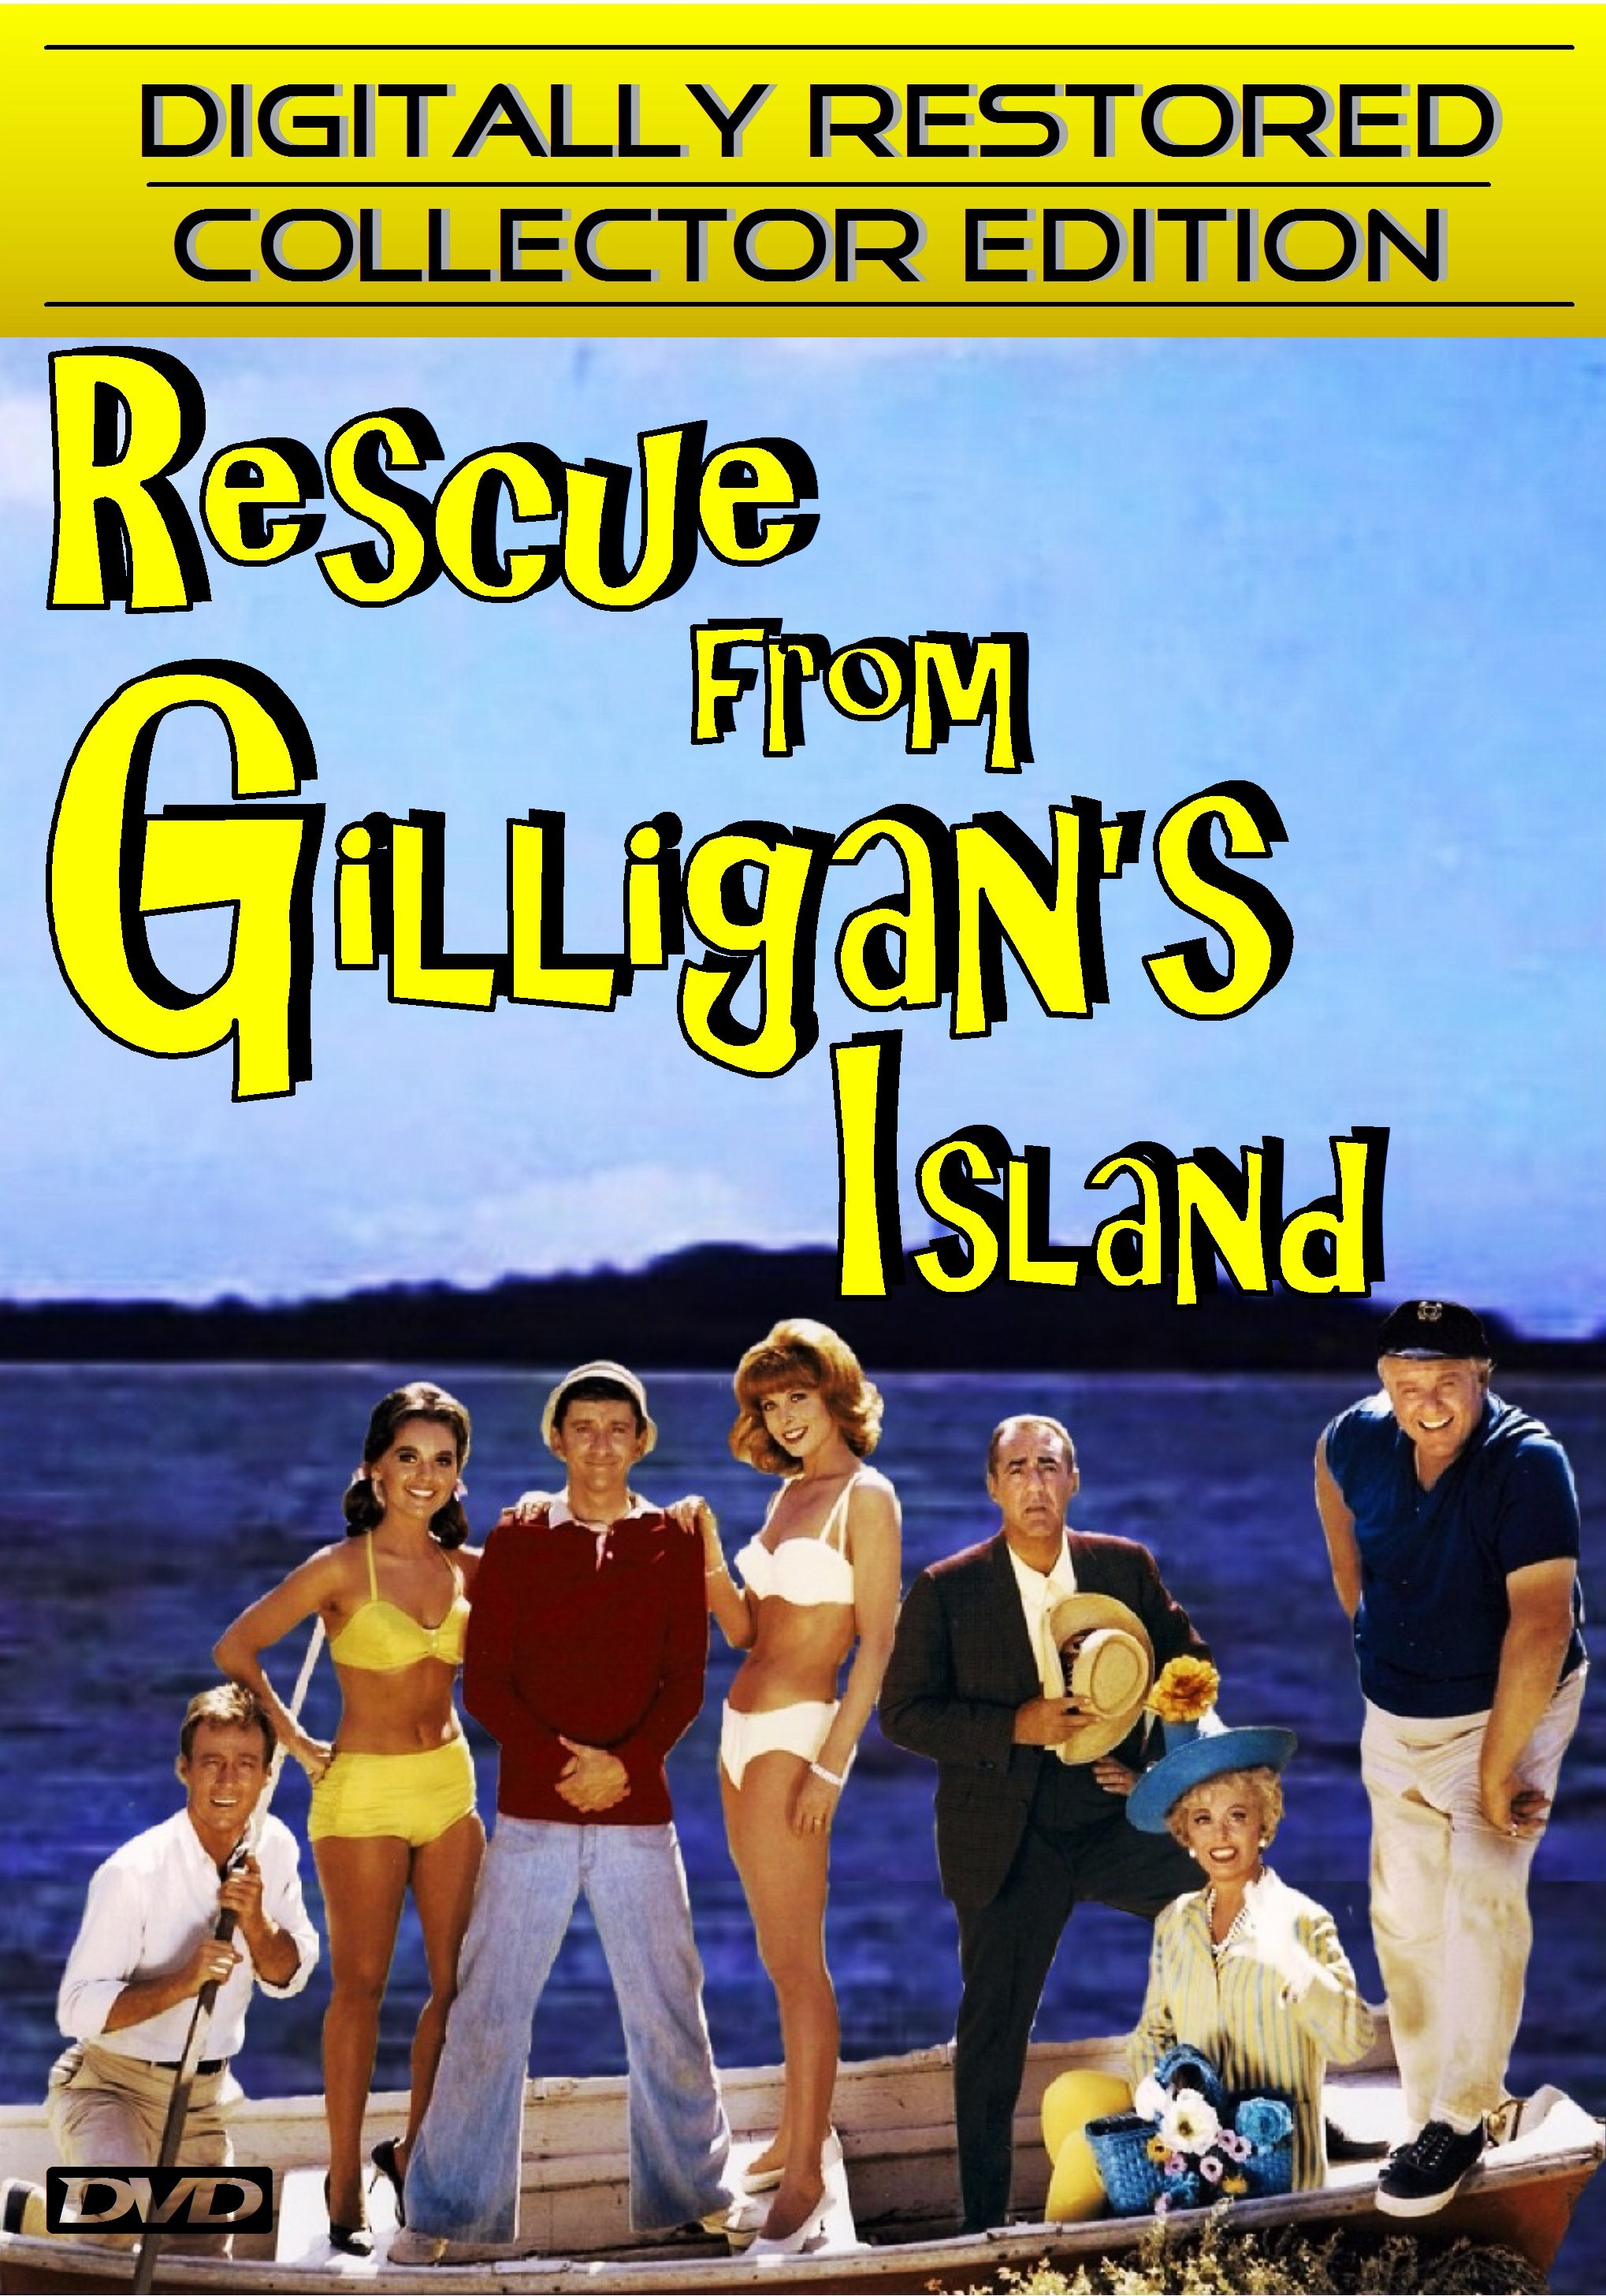 Rescue from Gilligan's Island DIGITALLY RESTORED